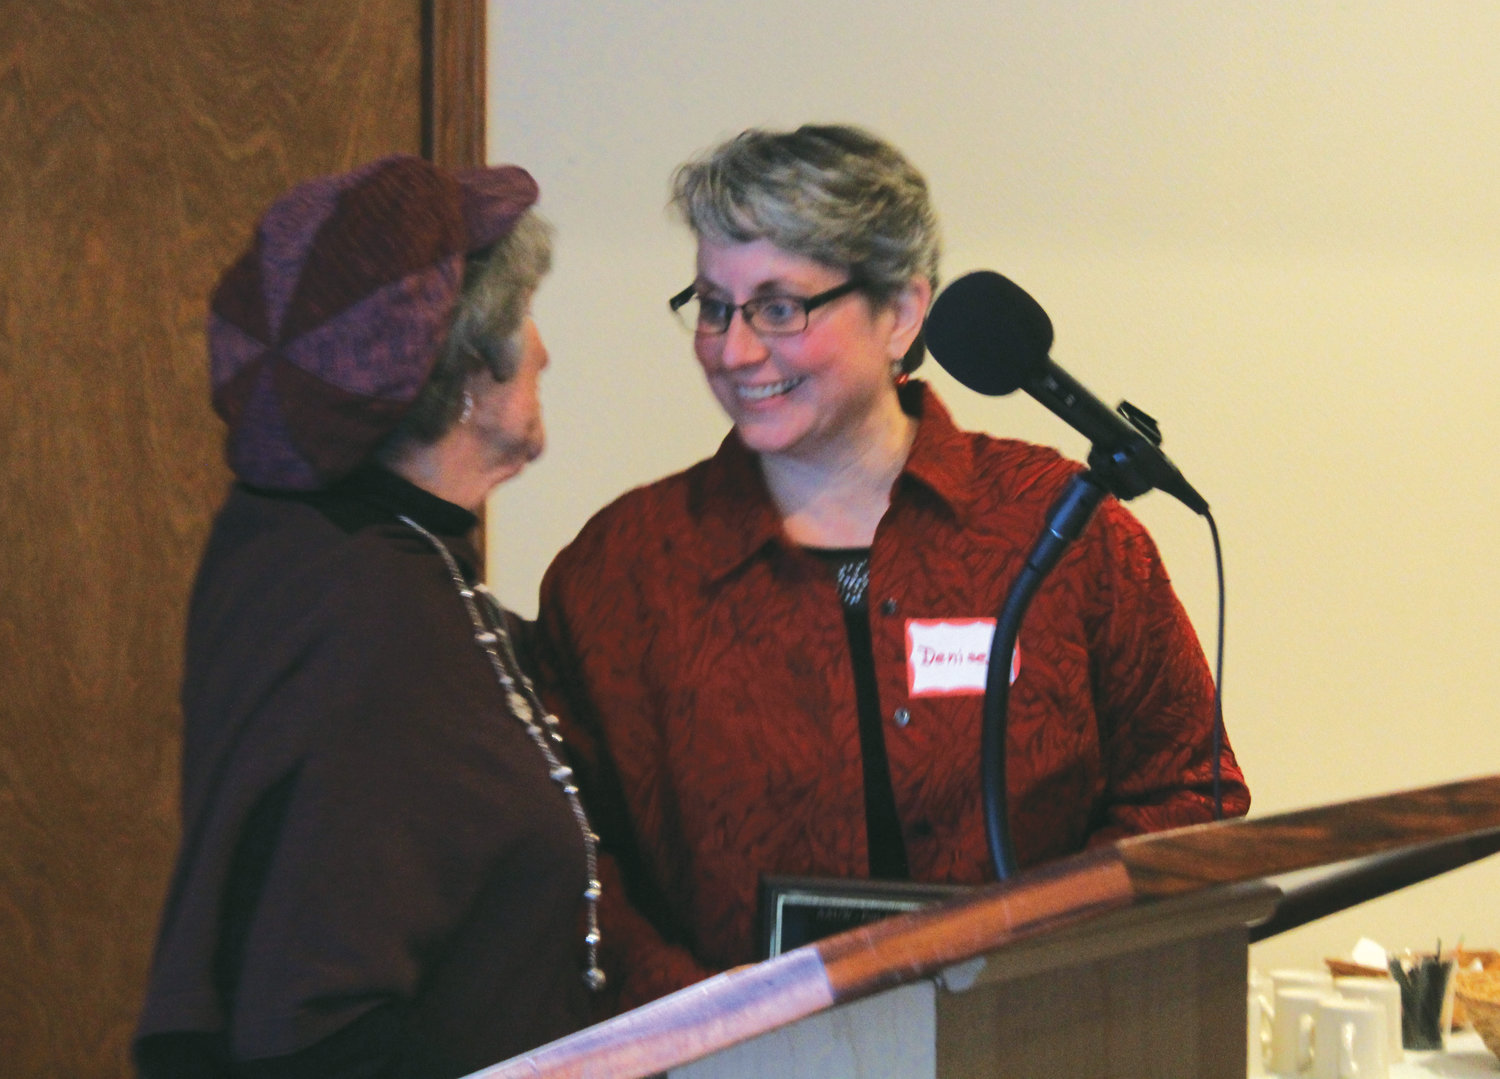 A Christmas Story On Kcpt 2020 KCPT Director honored as 'Woman of Excellence' | Port Townsend Leader